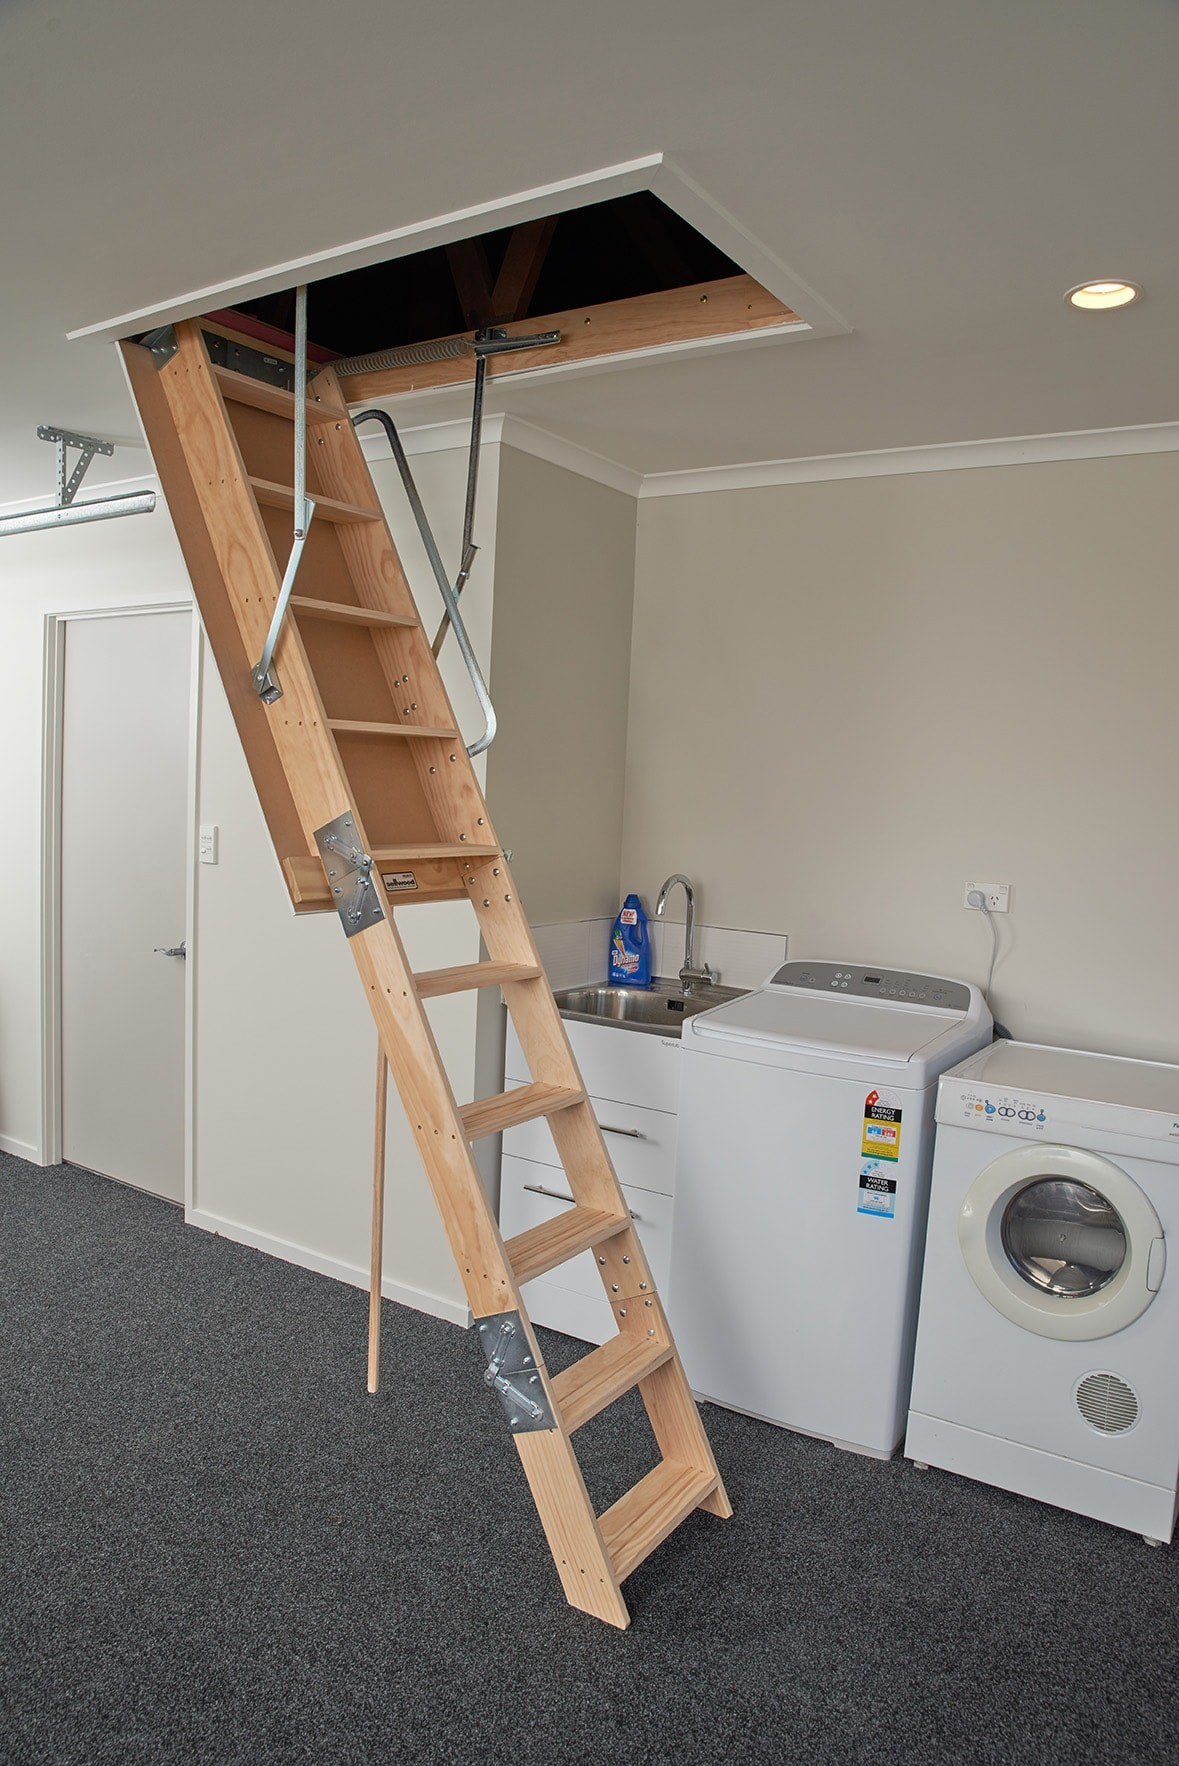 Wernerladder.com Attic Ladders Installation